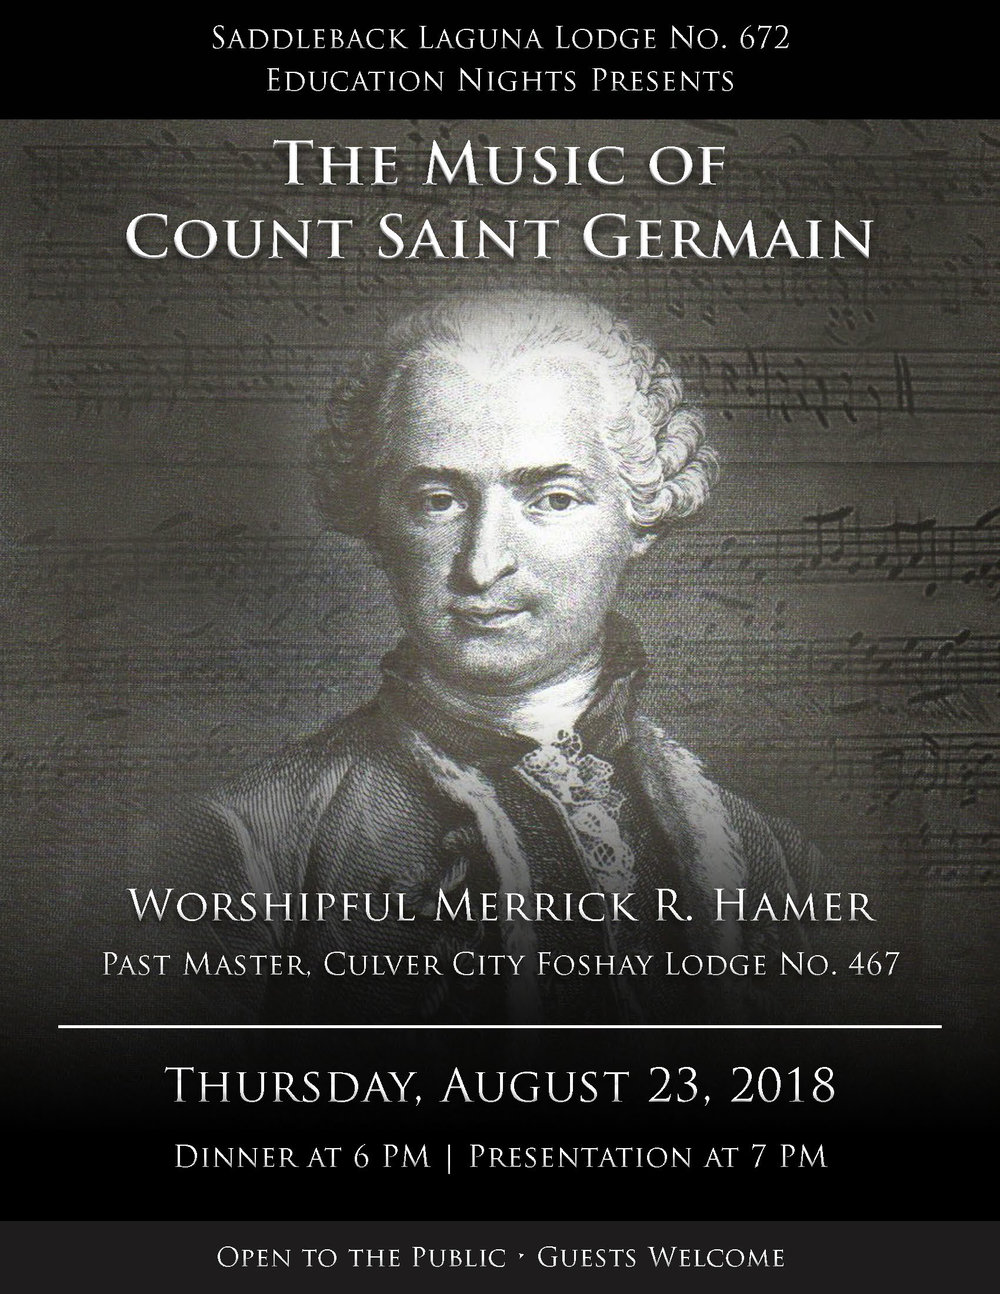 "Join us on Education Night, as we learn about: ""The Music of Count Saint Germain""  presented by: Worshipful Merrick R. Hamer   Past Master of Culver City-Foshay Lodge No. 467.  This event is open to the public.Dinner is at 6:00 p.m. The meeting starts at 7:00 p.m.Suggested dinner donation is $10.00. -"